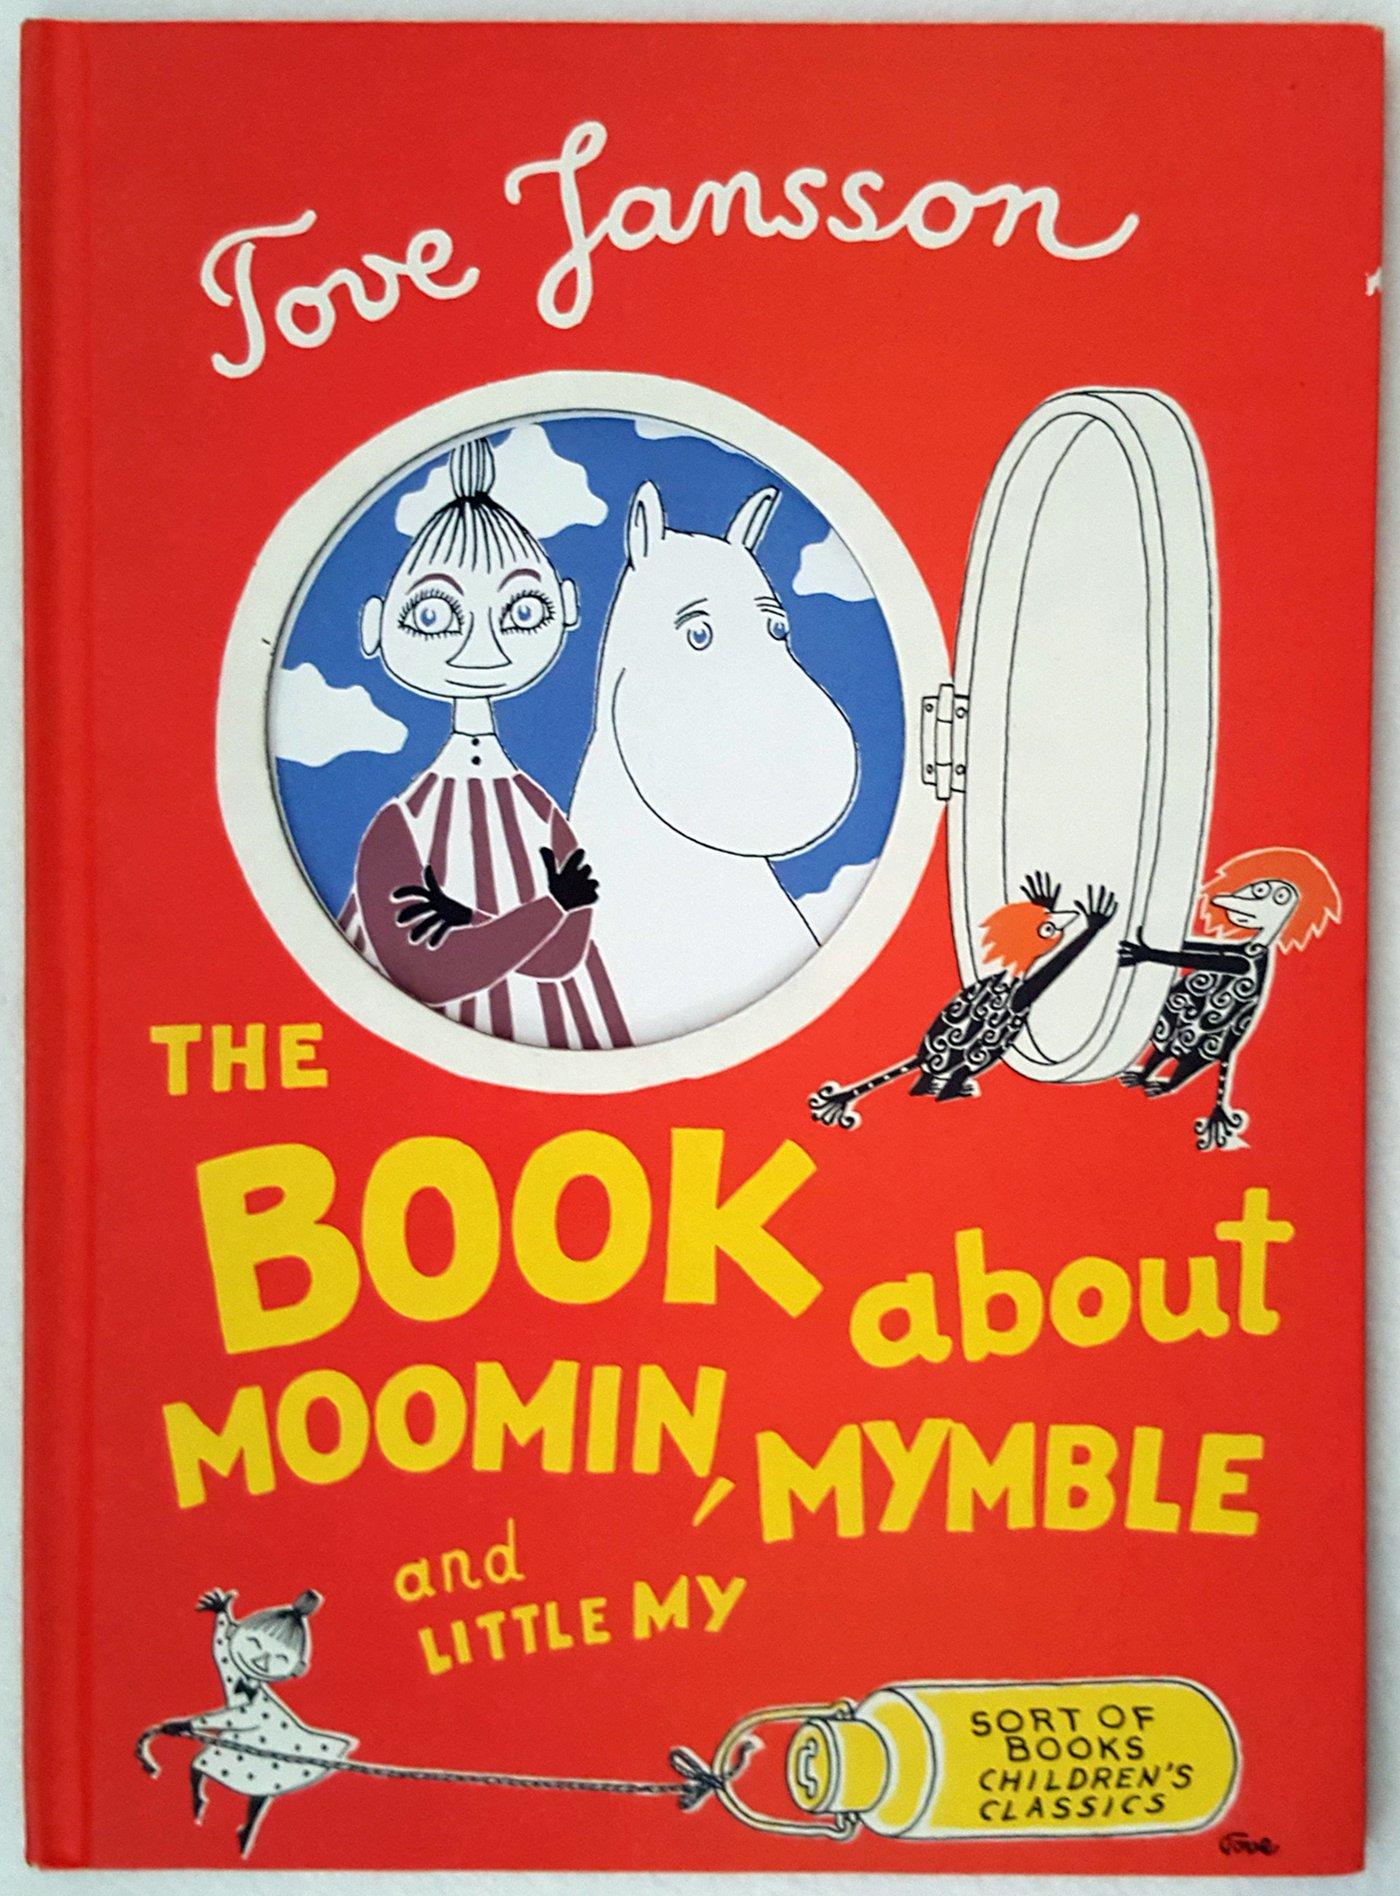 Tove Jansson The Book About Moomin, Mymble and Little My Sort of Books.jpg